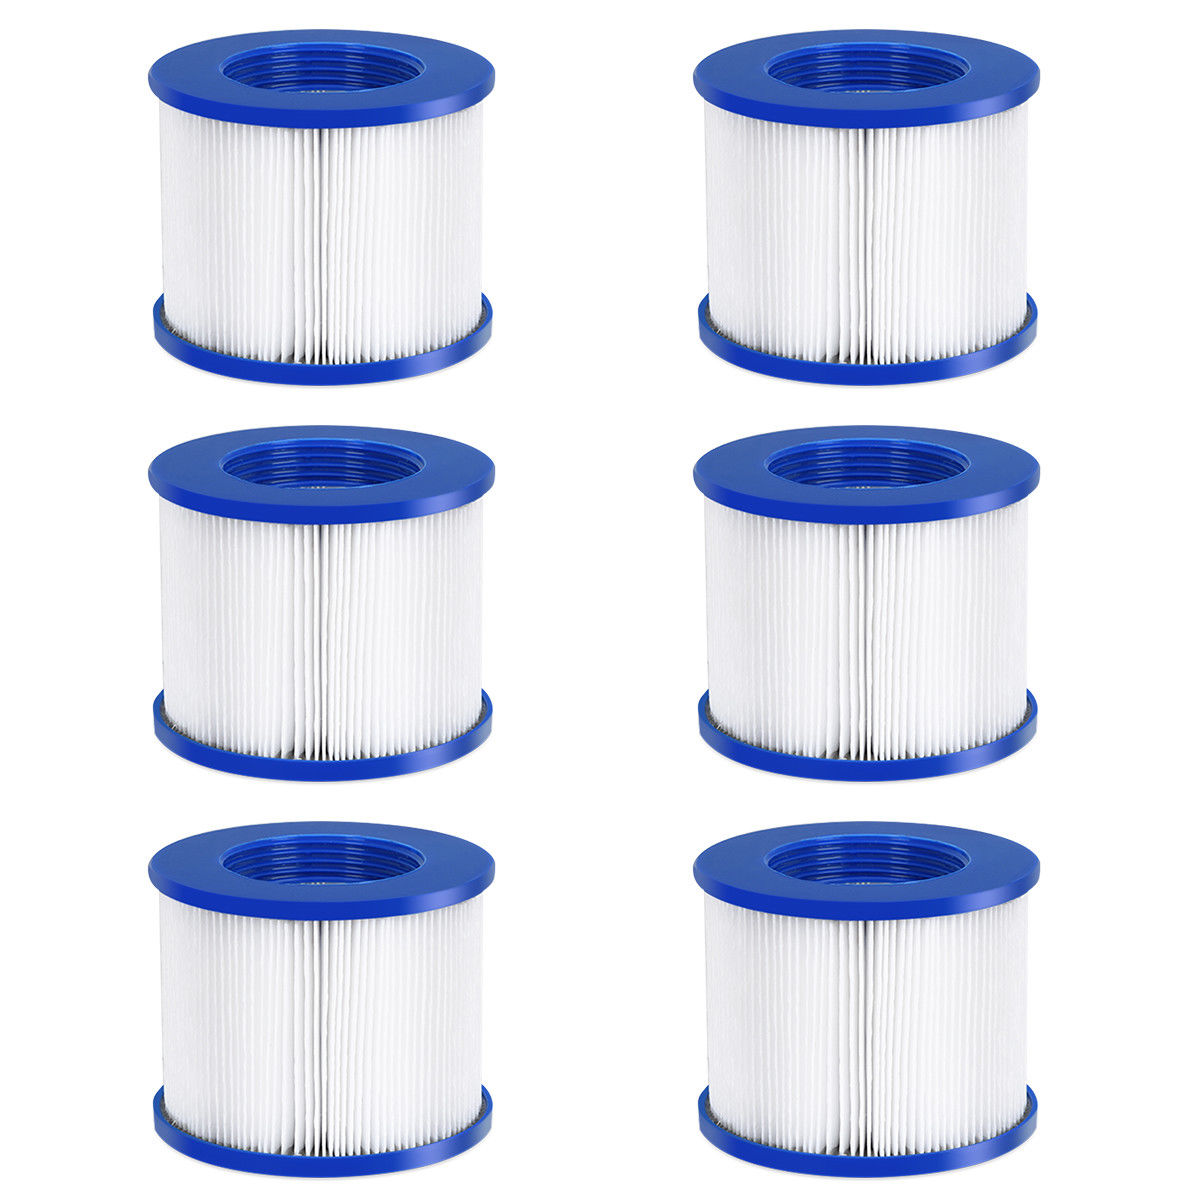 Goplus 6 Pack Hot Tub Pool Spa Filter Cartridge Pump Replacement 120 Fold Easy Set